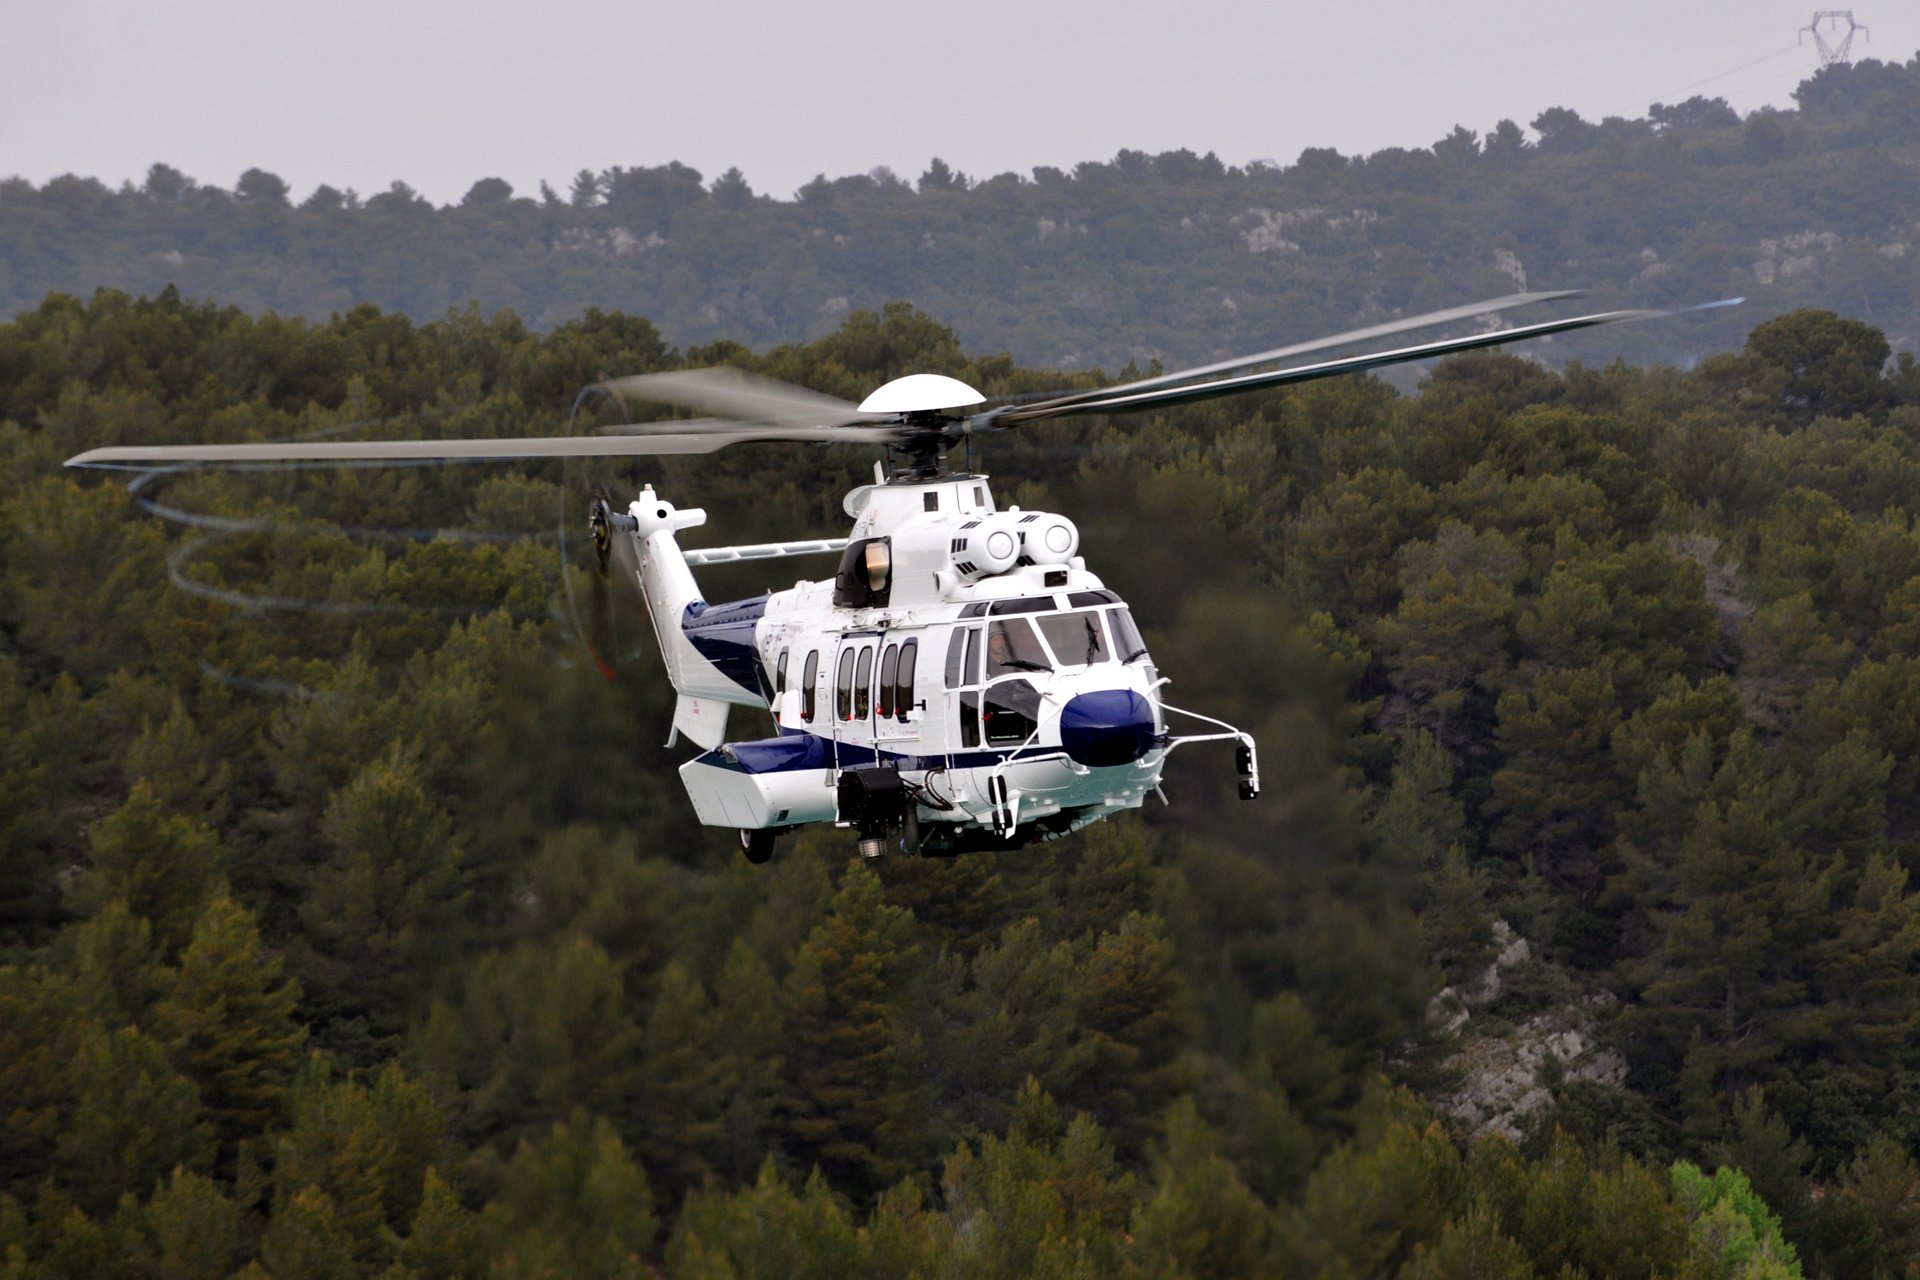 Currently operating a number of Airbus helicopters, Japan's National Police Agency (NPA) has ordered one new H225 as part of its fleet modernisation programme.